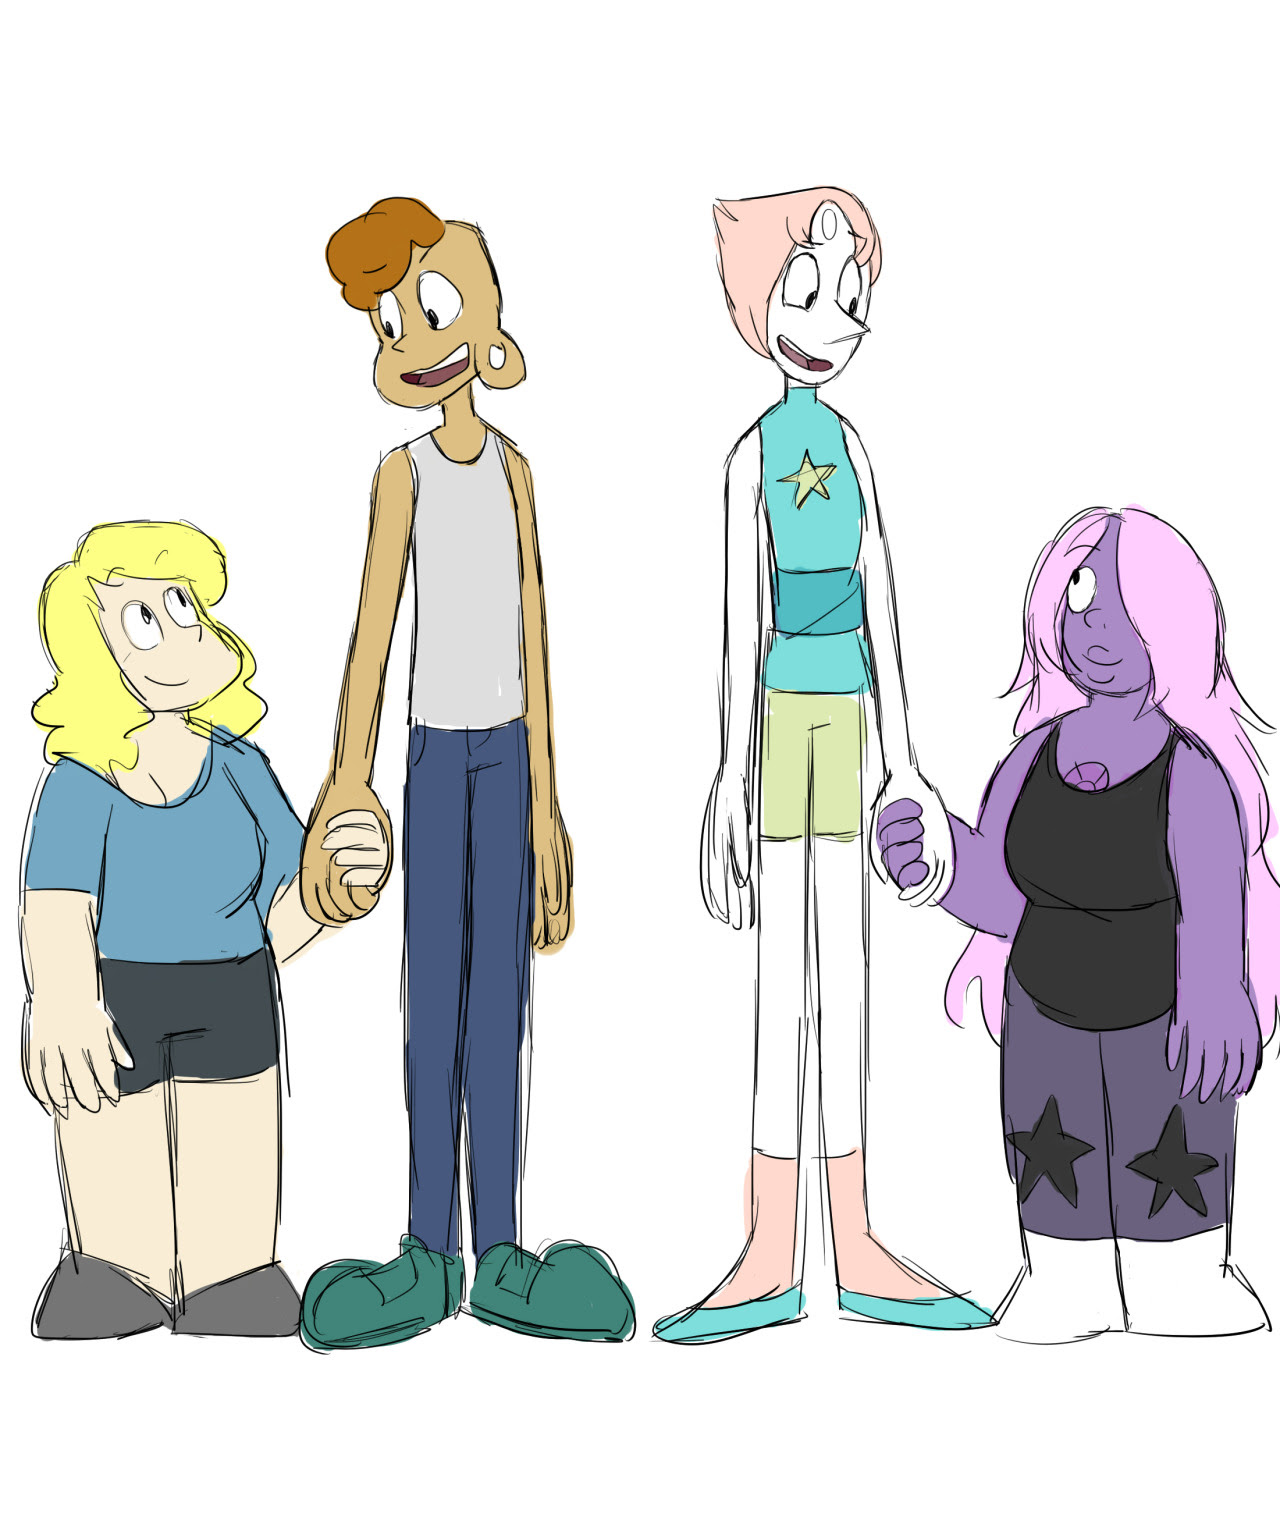 tall, thin, easily flustered redheads and their short chubby gfs who are always ready to fight